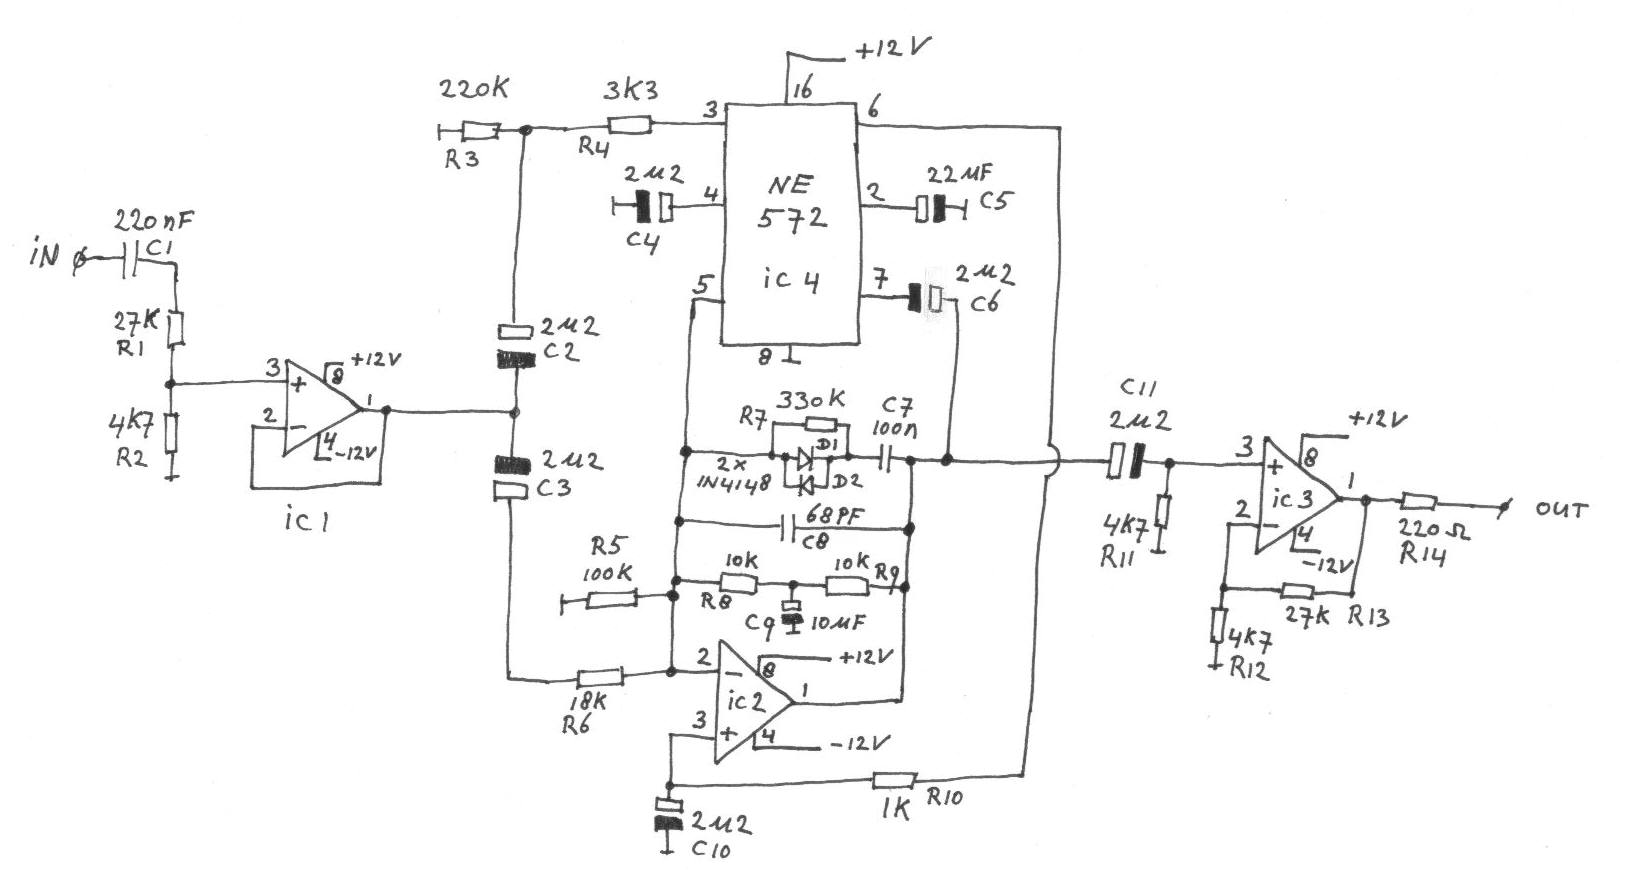 Audio limiter on audio clips, inverter schematics, relay schematics, audio mixer circuit, generator schematics, led schematics, audio circuit books, audio splitter circuit, audio amp schematic, audio circuit symbols, lm3914 schematics, radio schematics, audio circuit design,